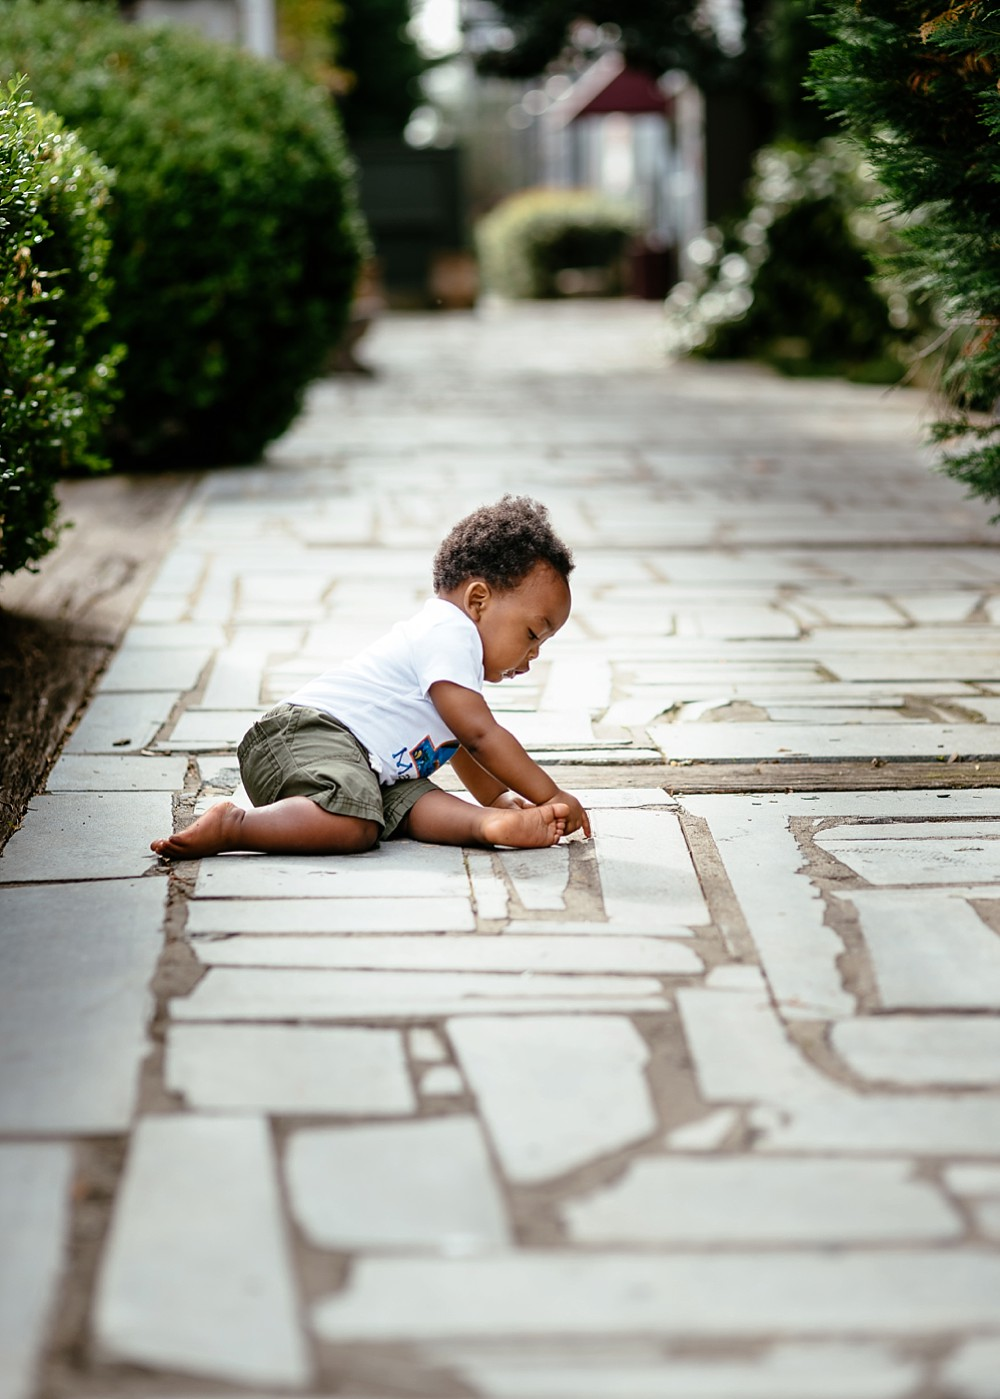 One year old using his hands to discover and explore the crevices on the cemented brick walkway